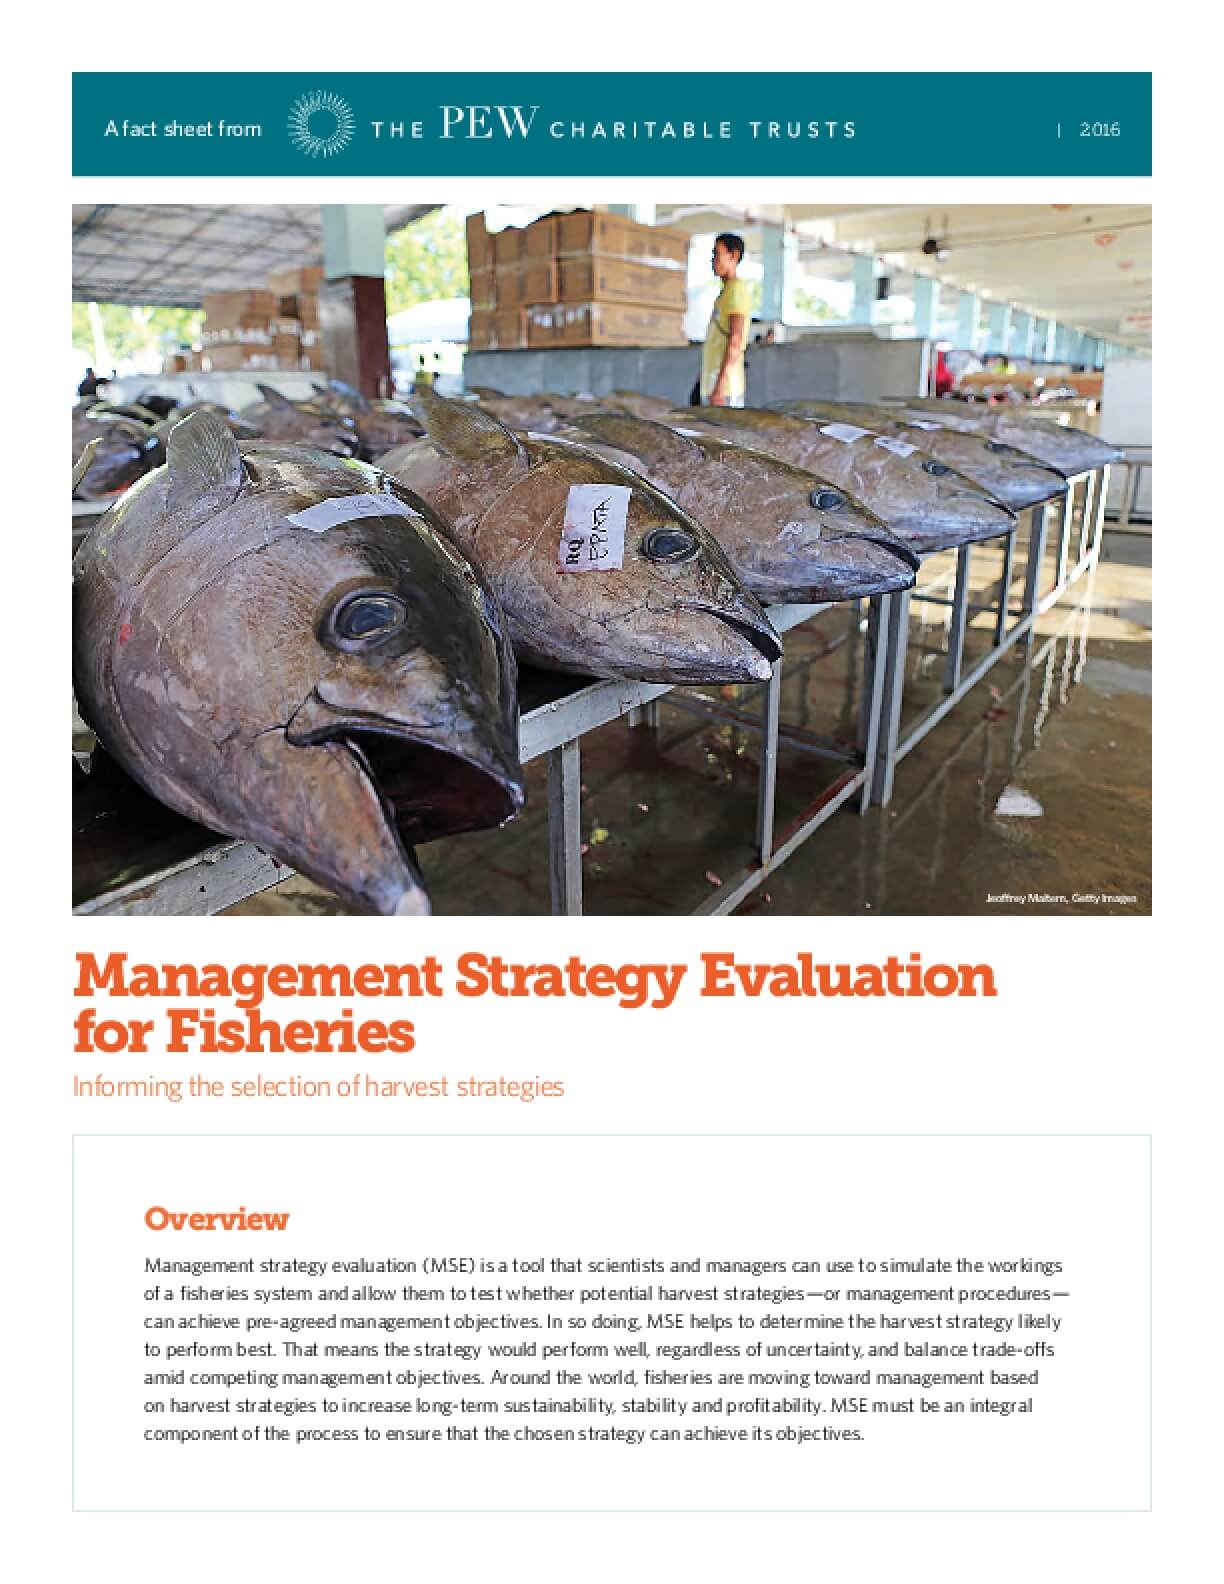 Management Strategy Evaluation for Fisheries: Informing the selection of harvest strategies